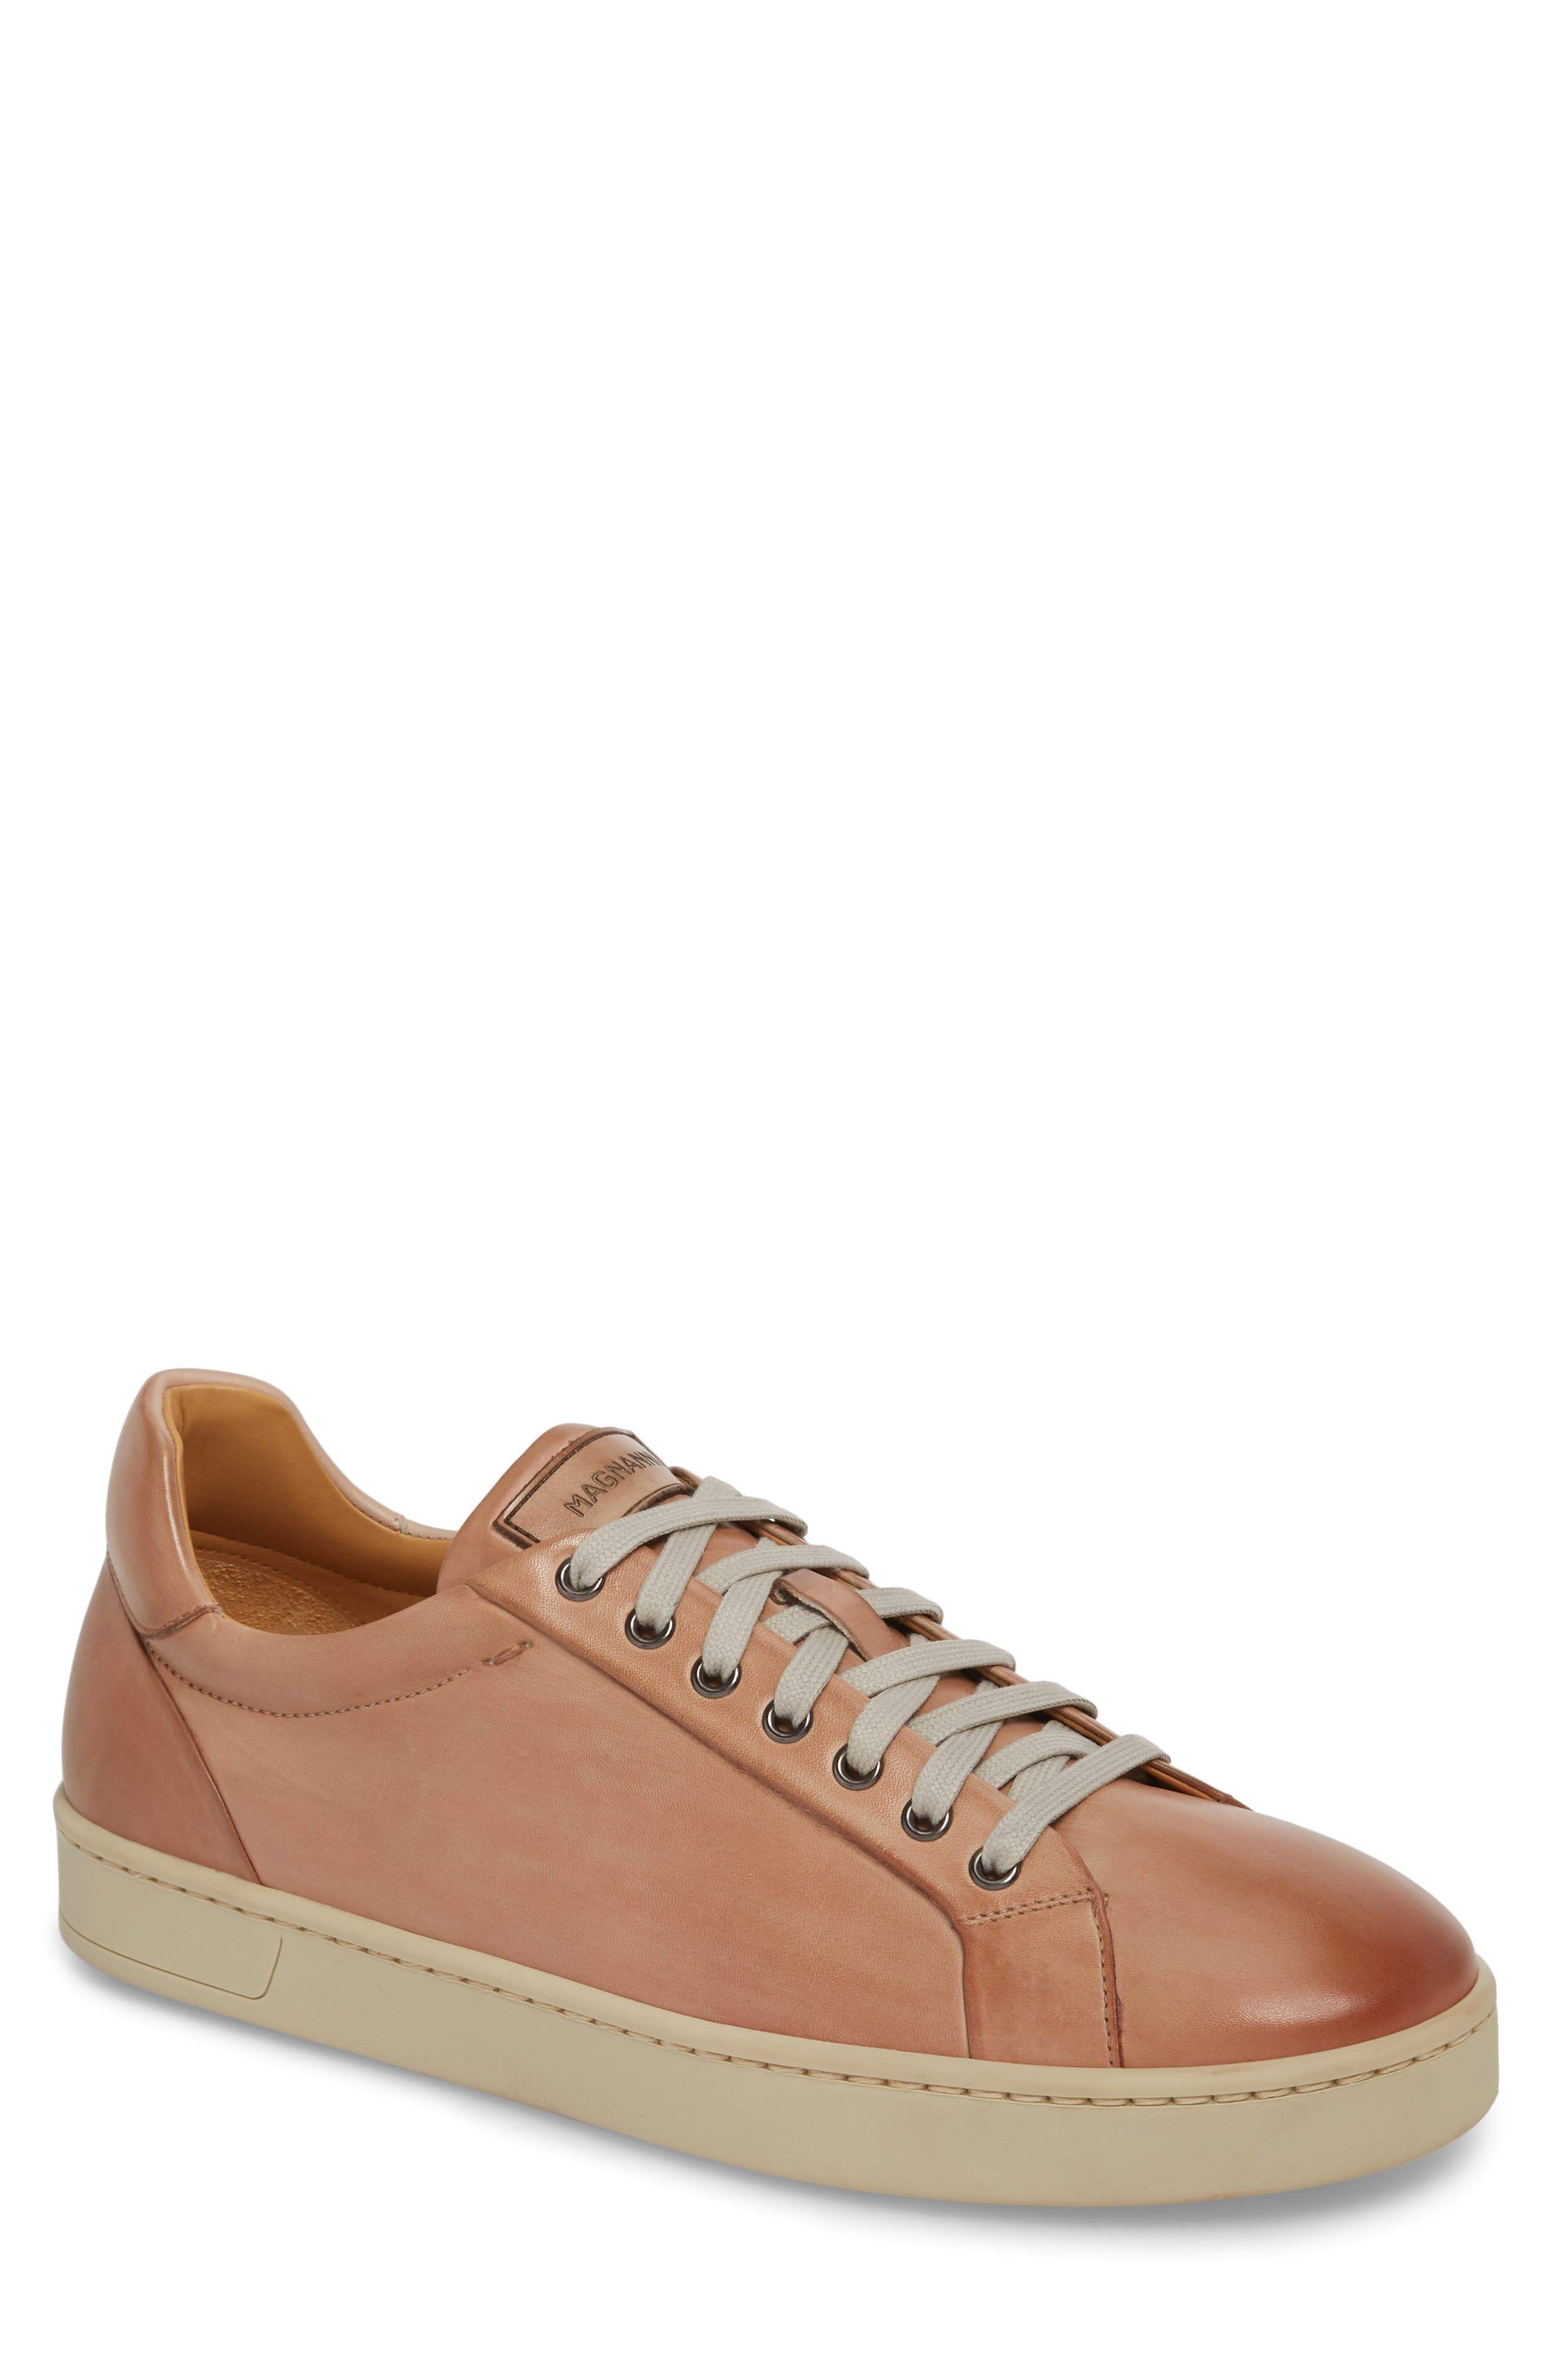 Elonso Low Top Sneaker,                             Main thumbnail 1, color,                             Rosa Leather